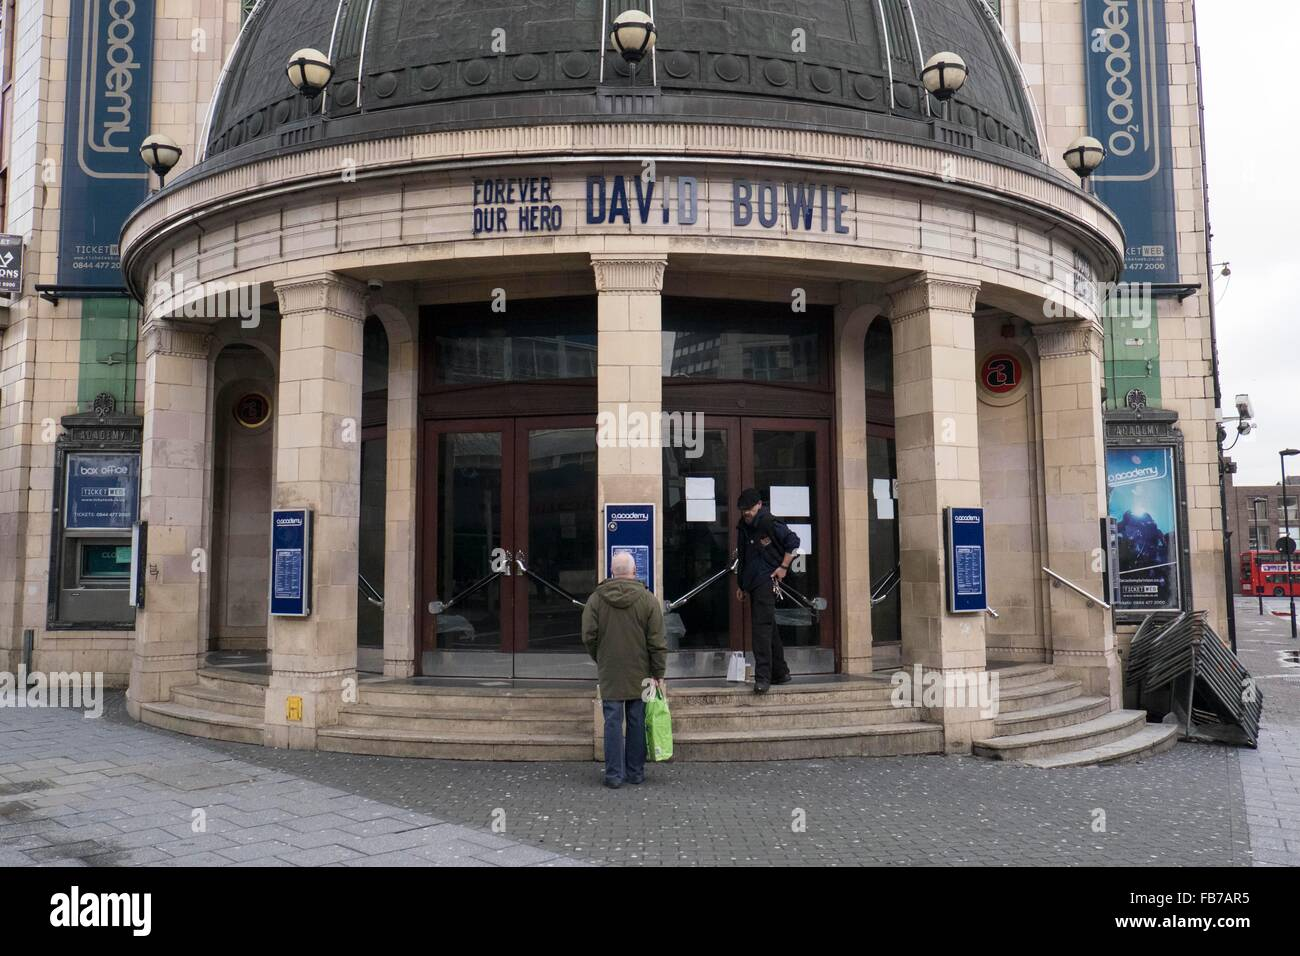 London, South London, UK. 11th Jan, 2016. Brixton Academy music venue pays its tribute to David Bowie in Brixton, Stock Photo